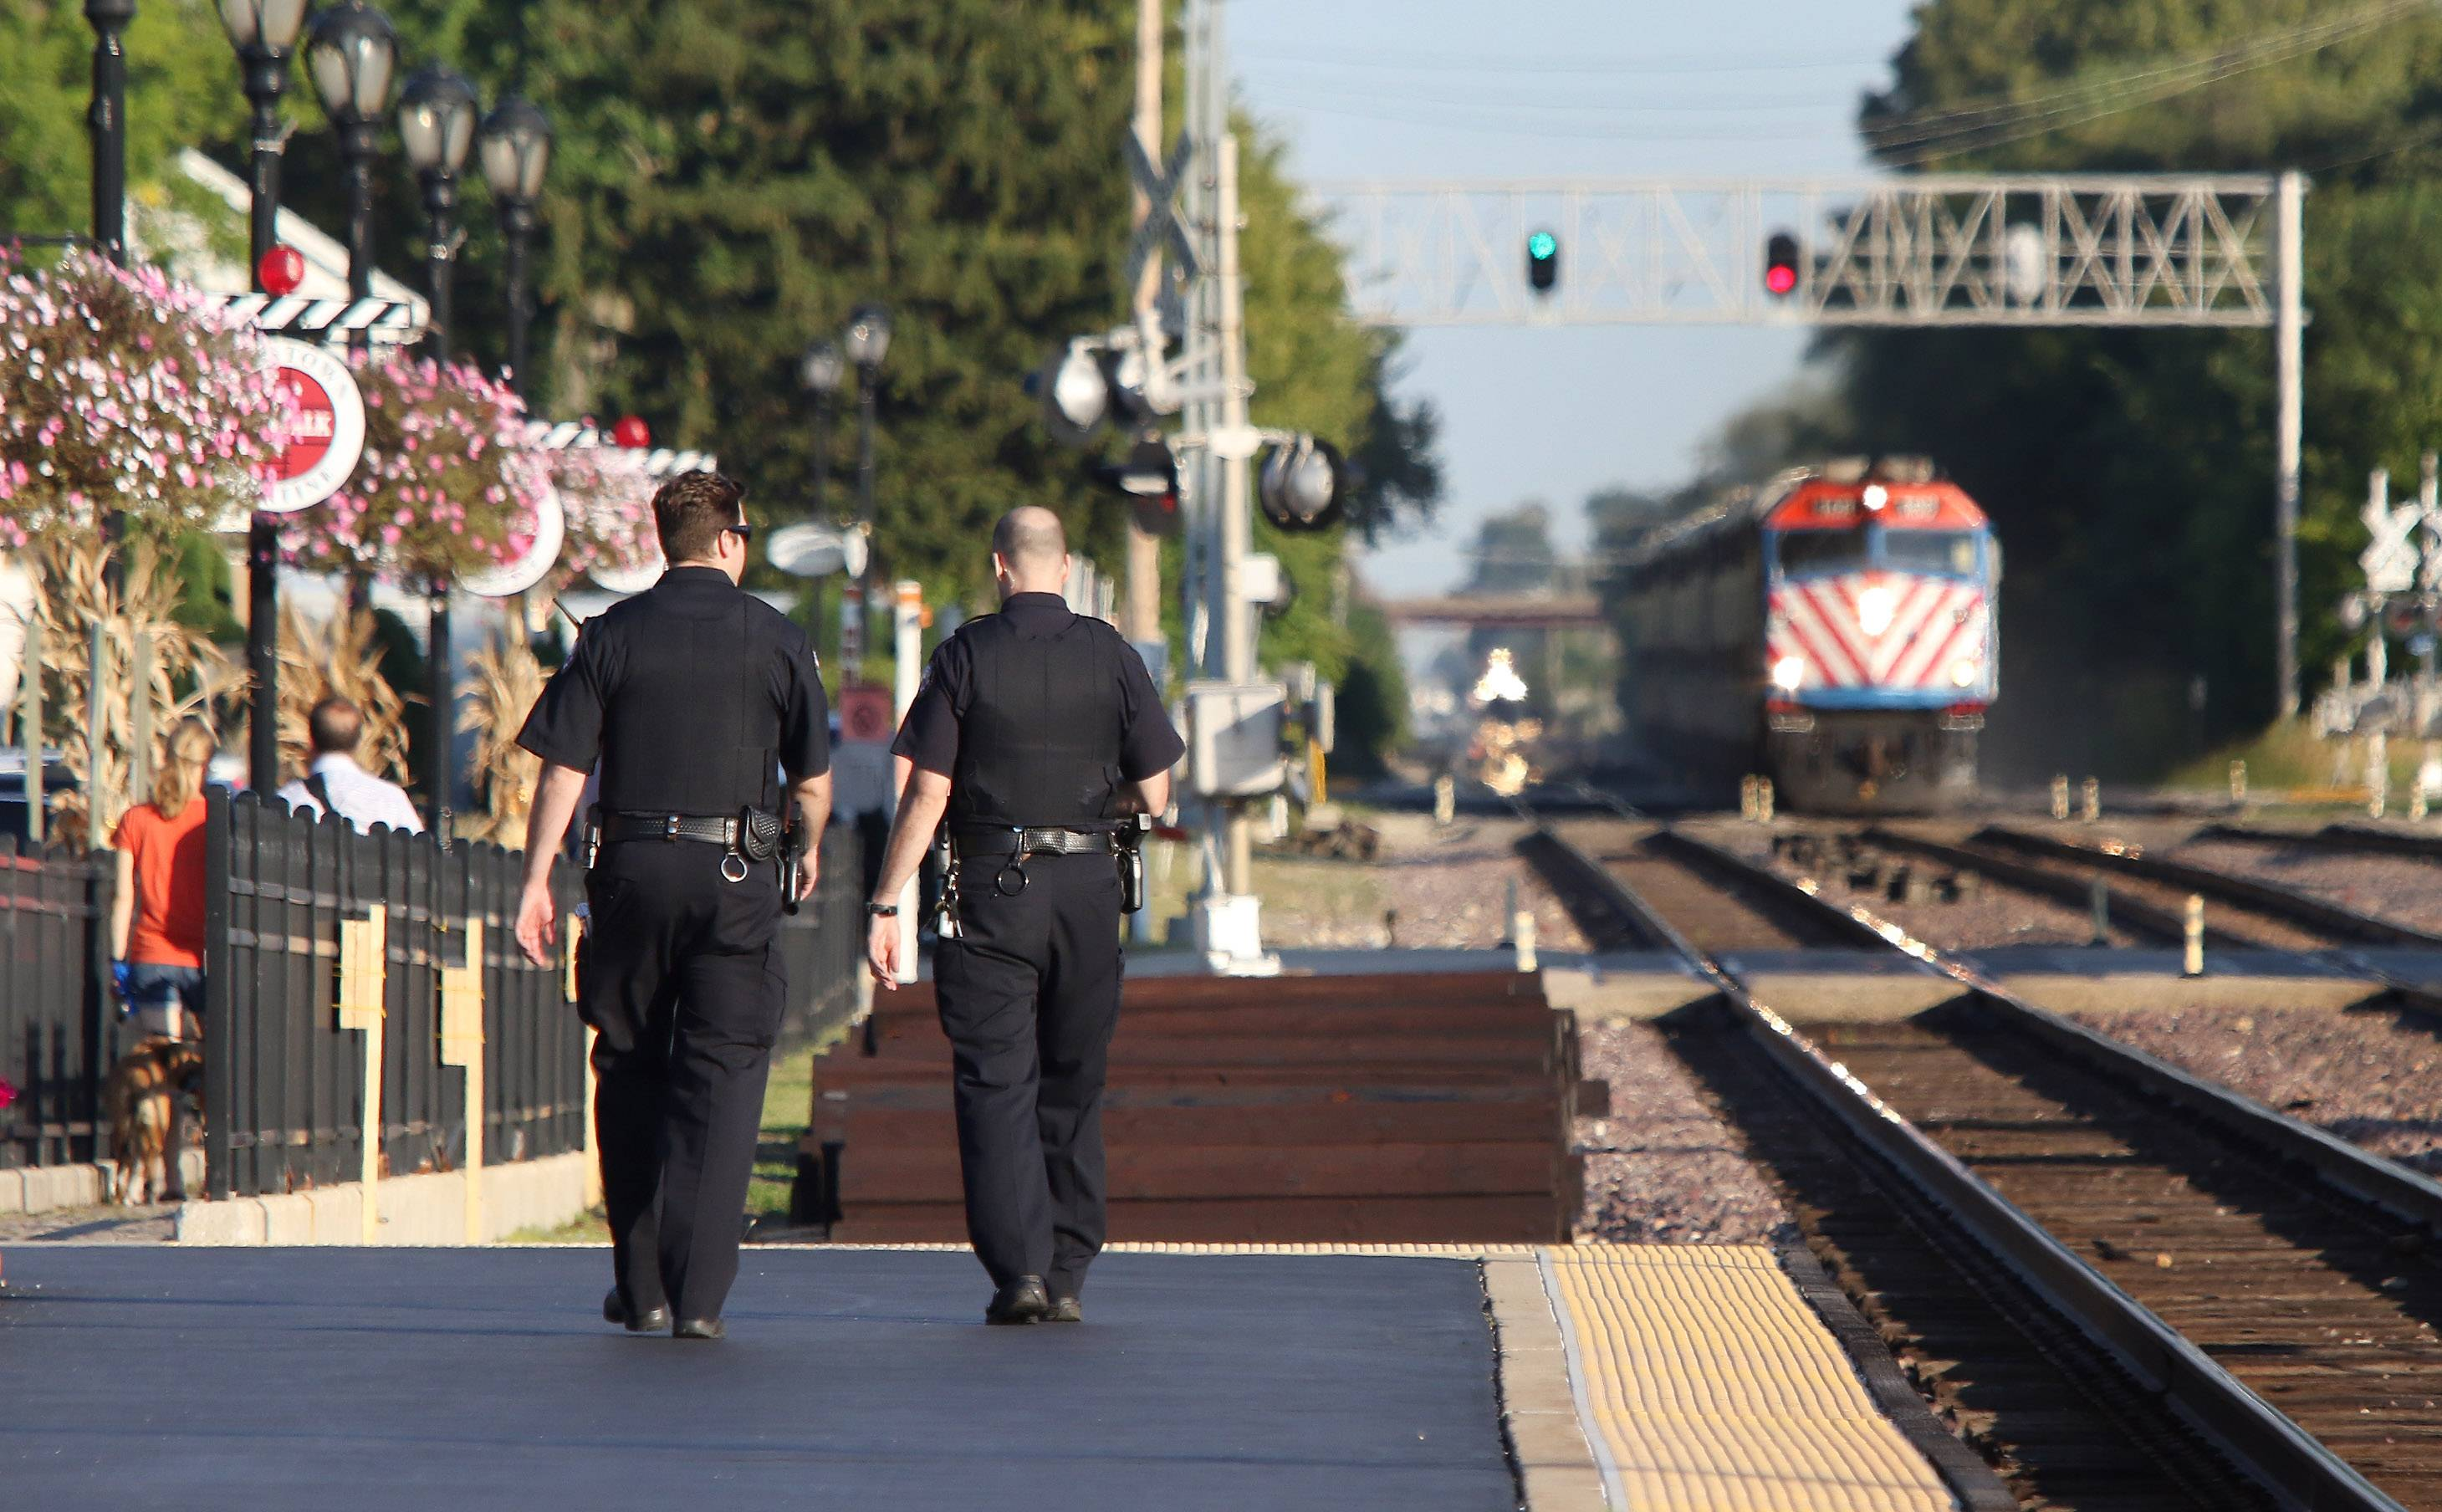 Police watch pedestrians at the Palatine Metra Station to guard against people illegally crossing over the tracks.